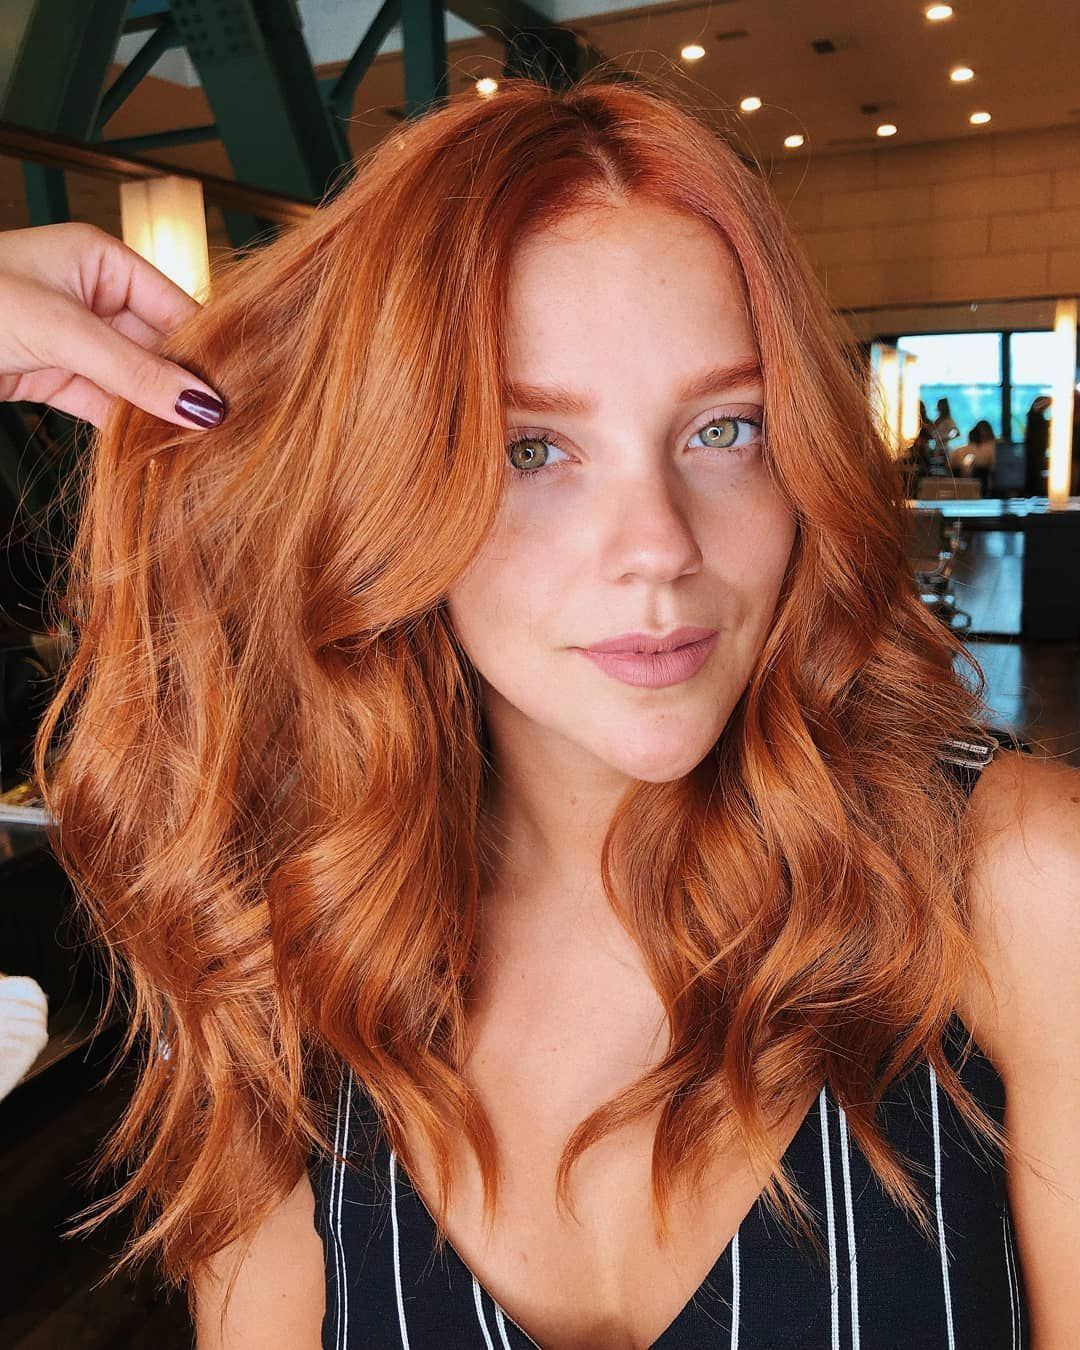 53 Fancy Ginger Hair Color Shades To Obsess Over: Ginger Hair Facts 53 Fancy Ginger Hair Color Shades to Obsess over: Ginger Hair Facts Red Hair copper red hair color